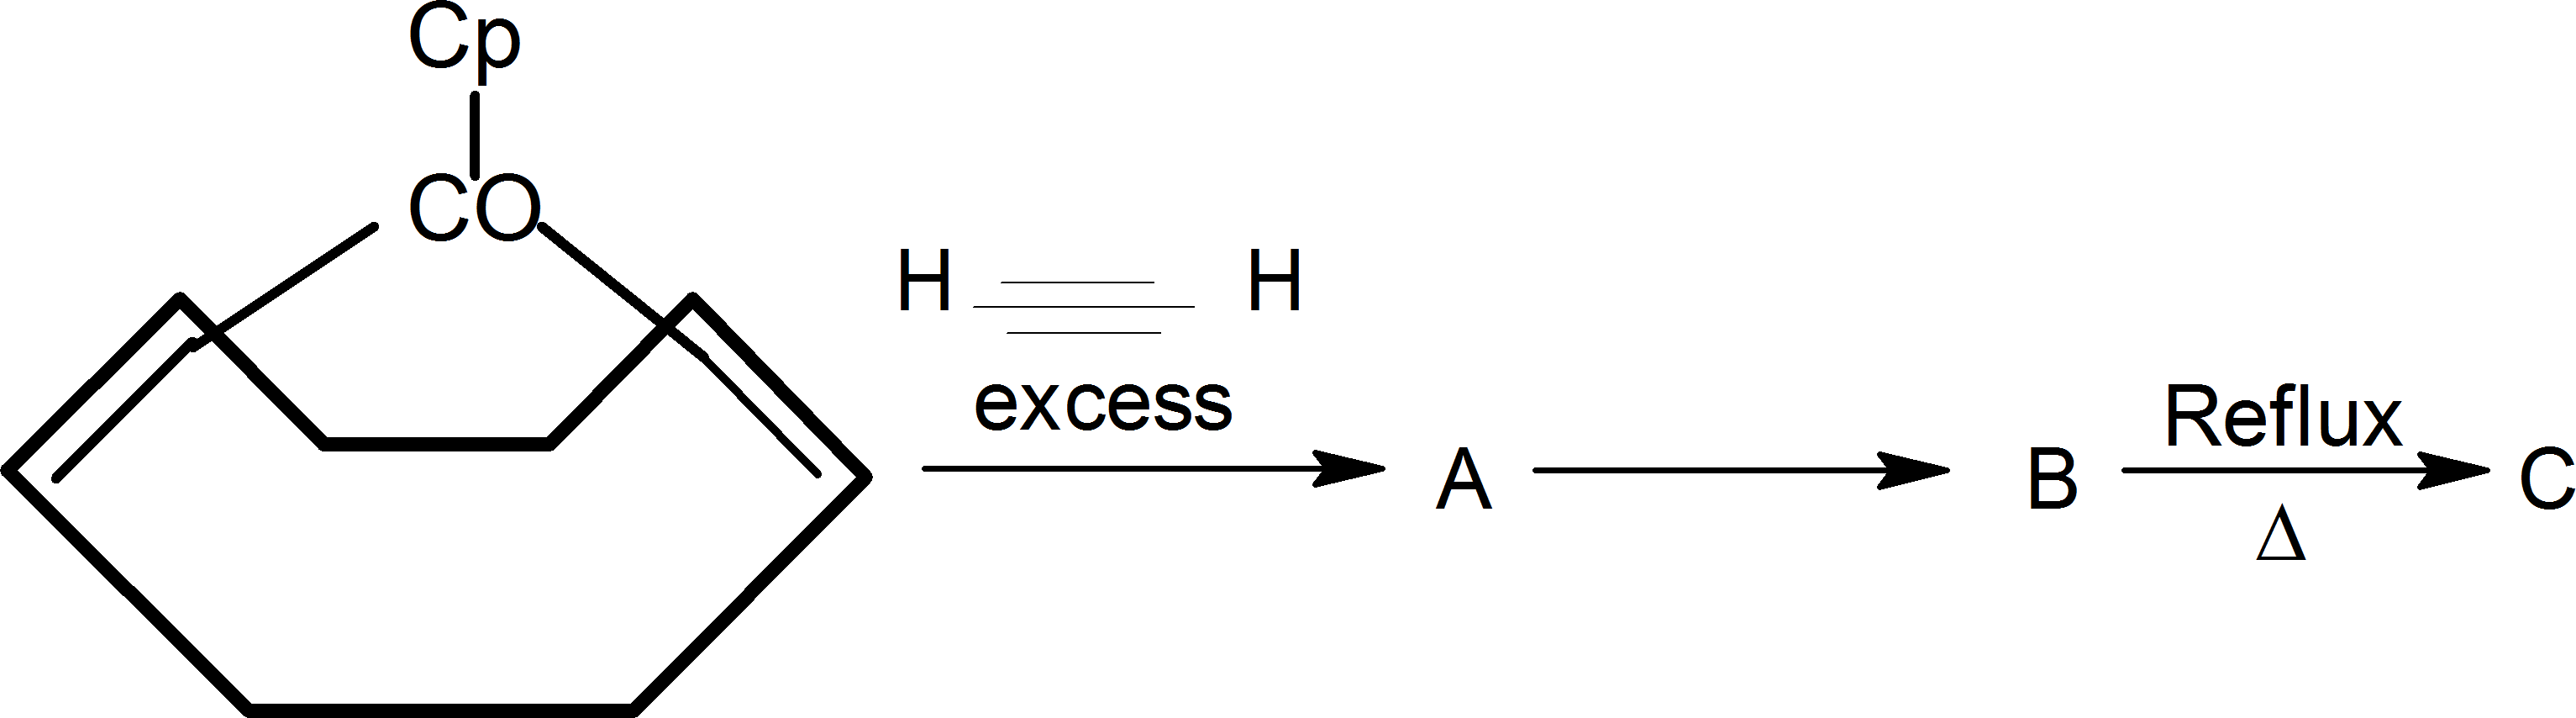 Understanding of excess and reflux process